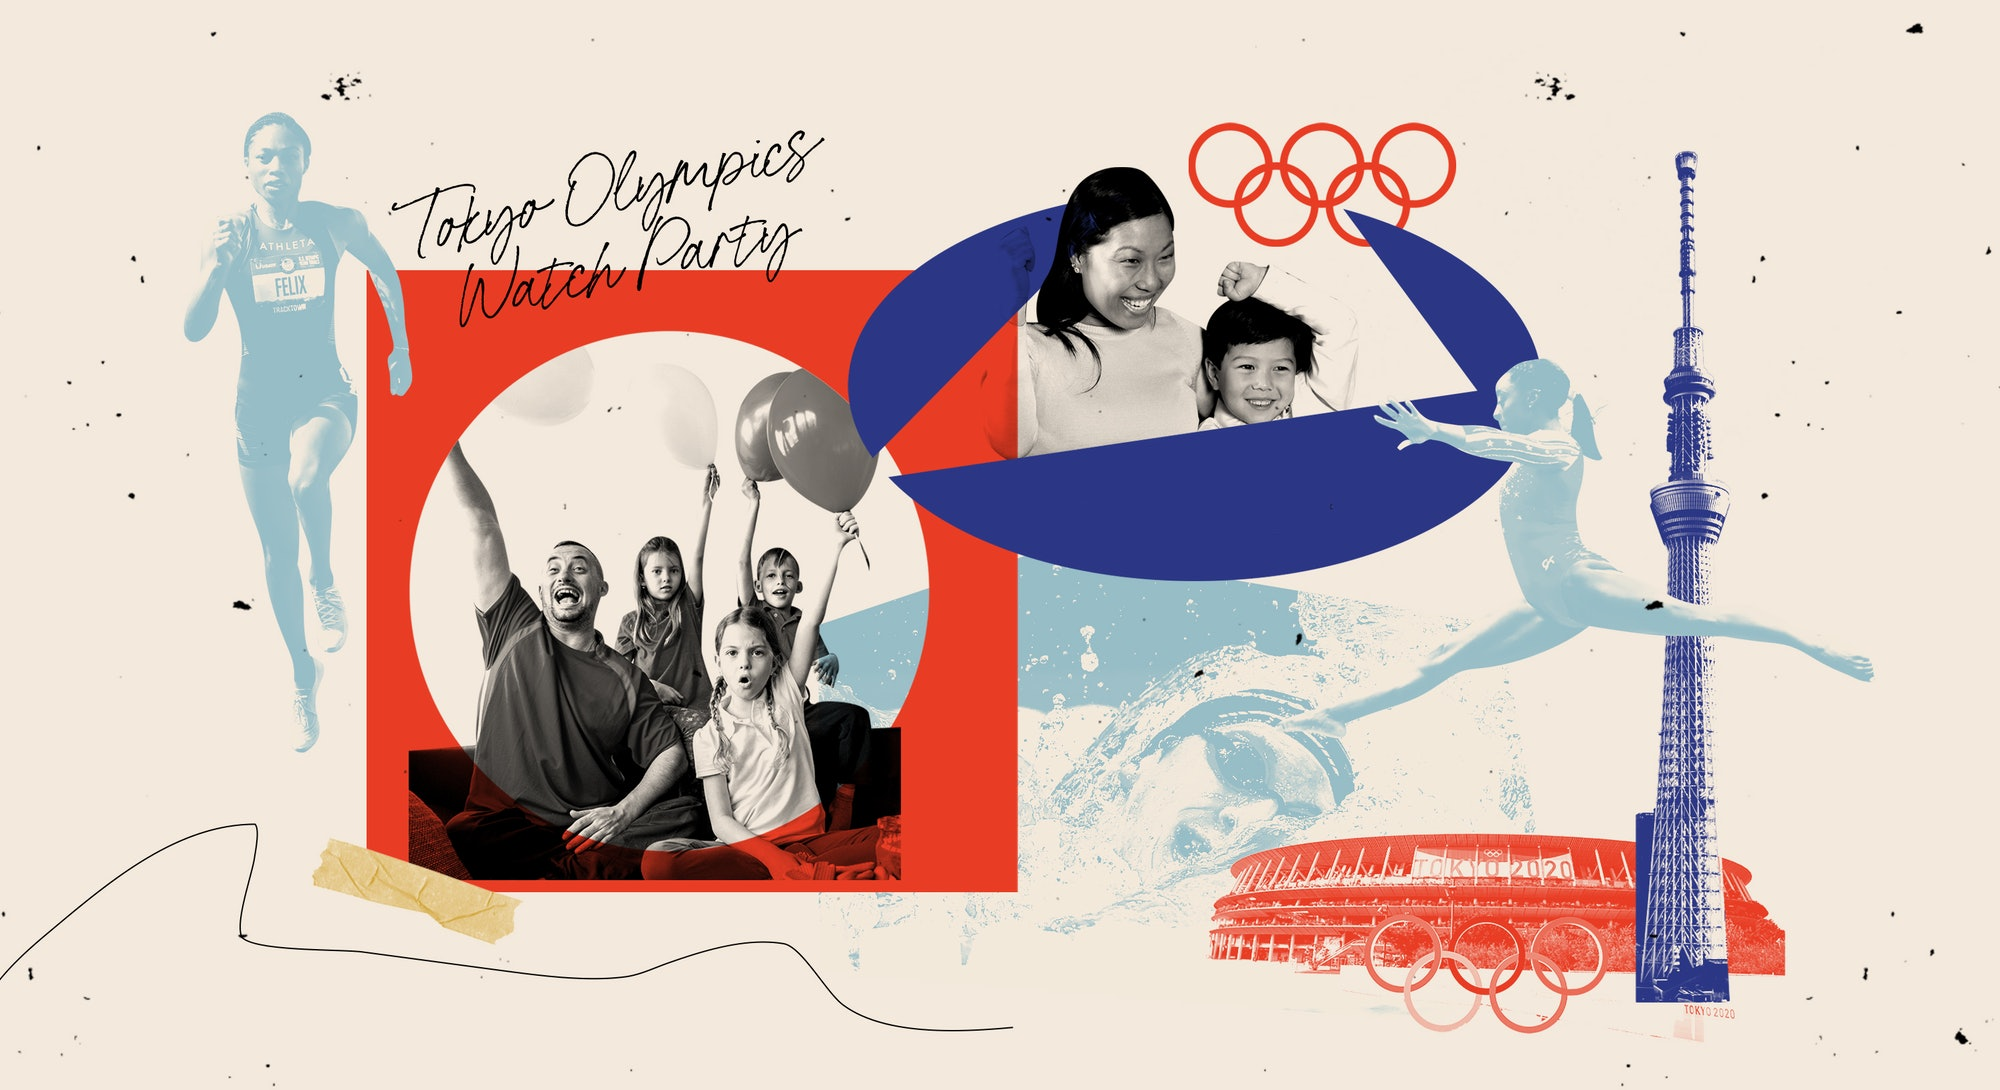 Throw an Olympics party with these ideas.